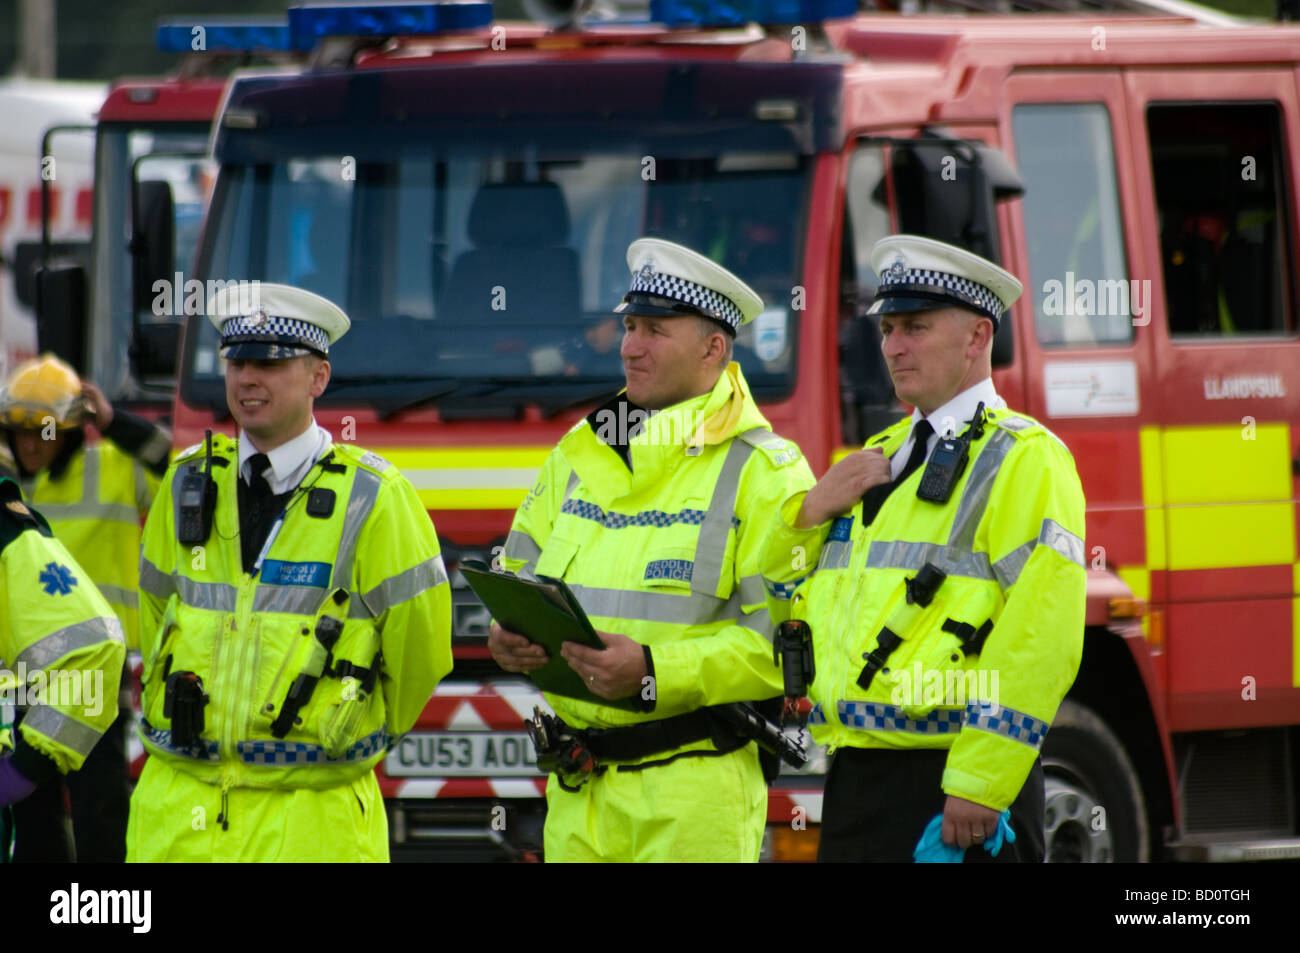 Three Traffic officers inspect a RTA while stood in front of a fire engine - Stock Image